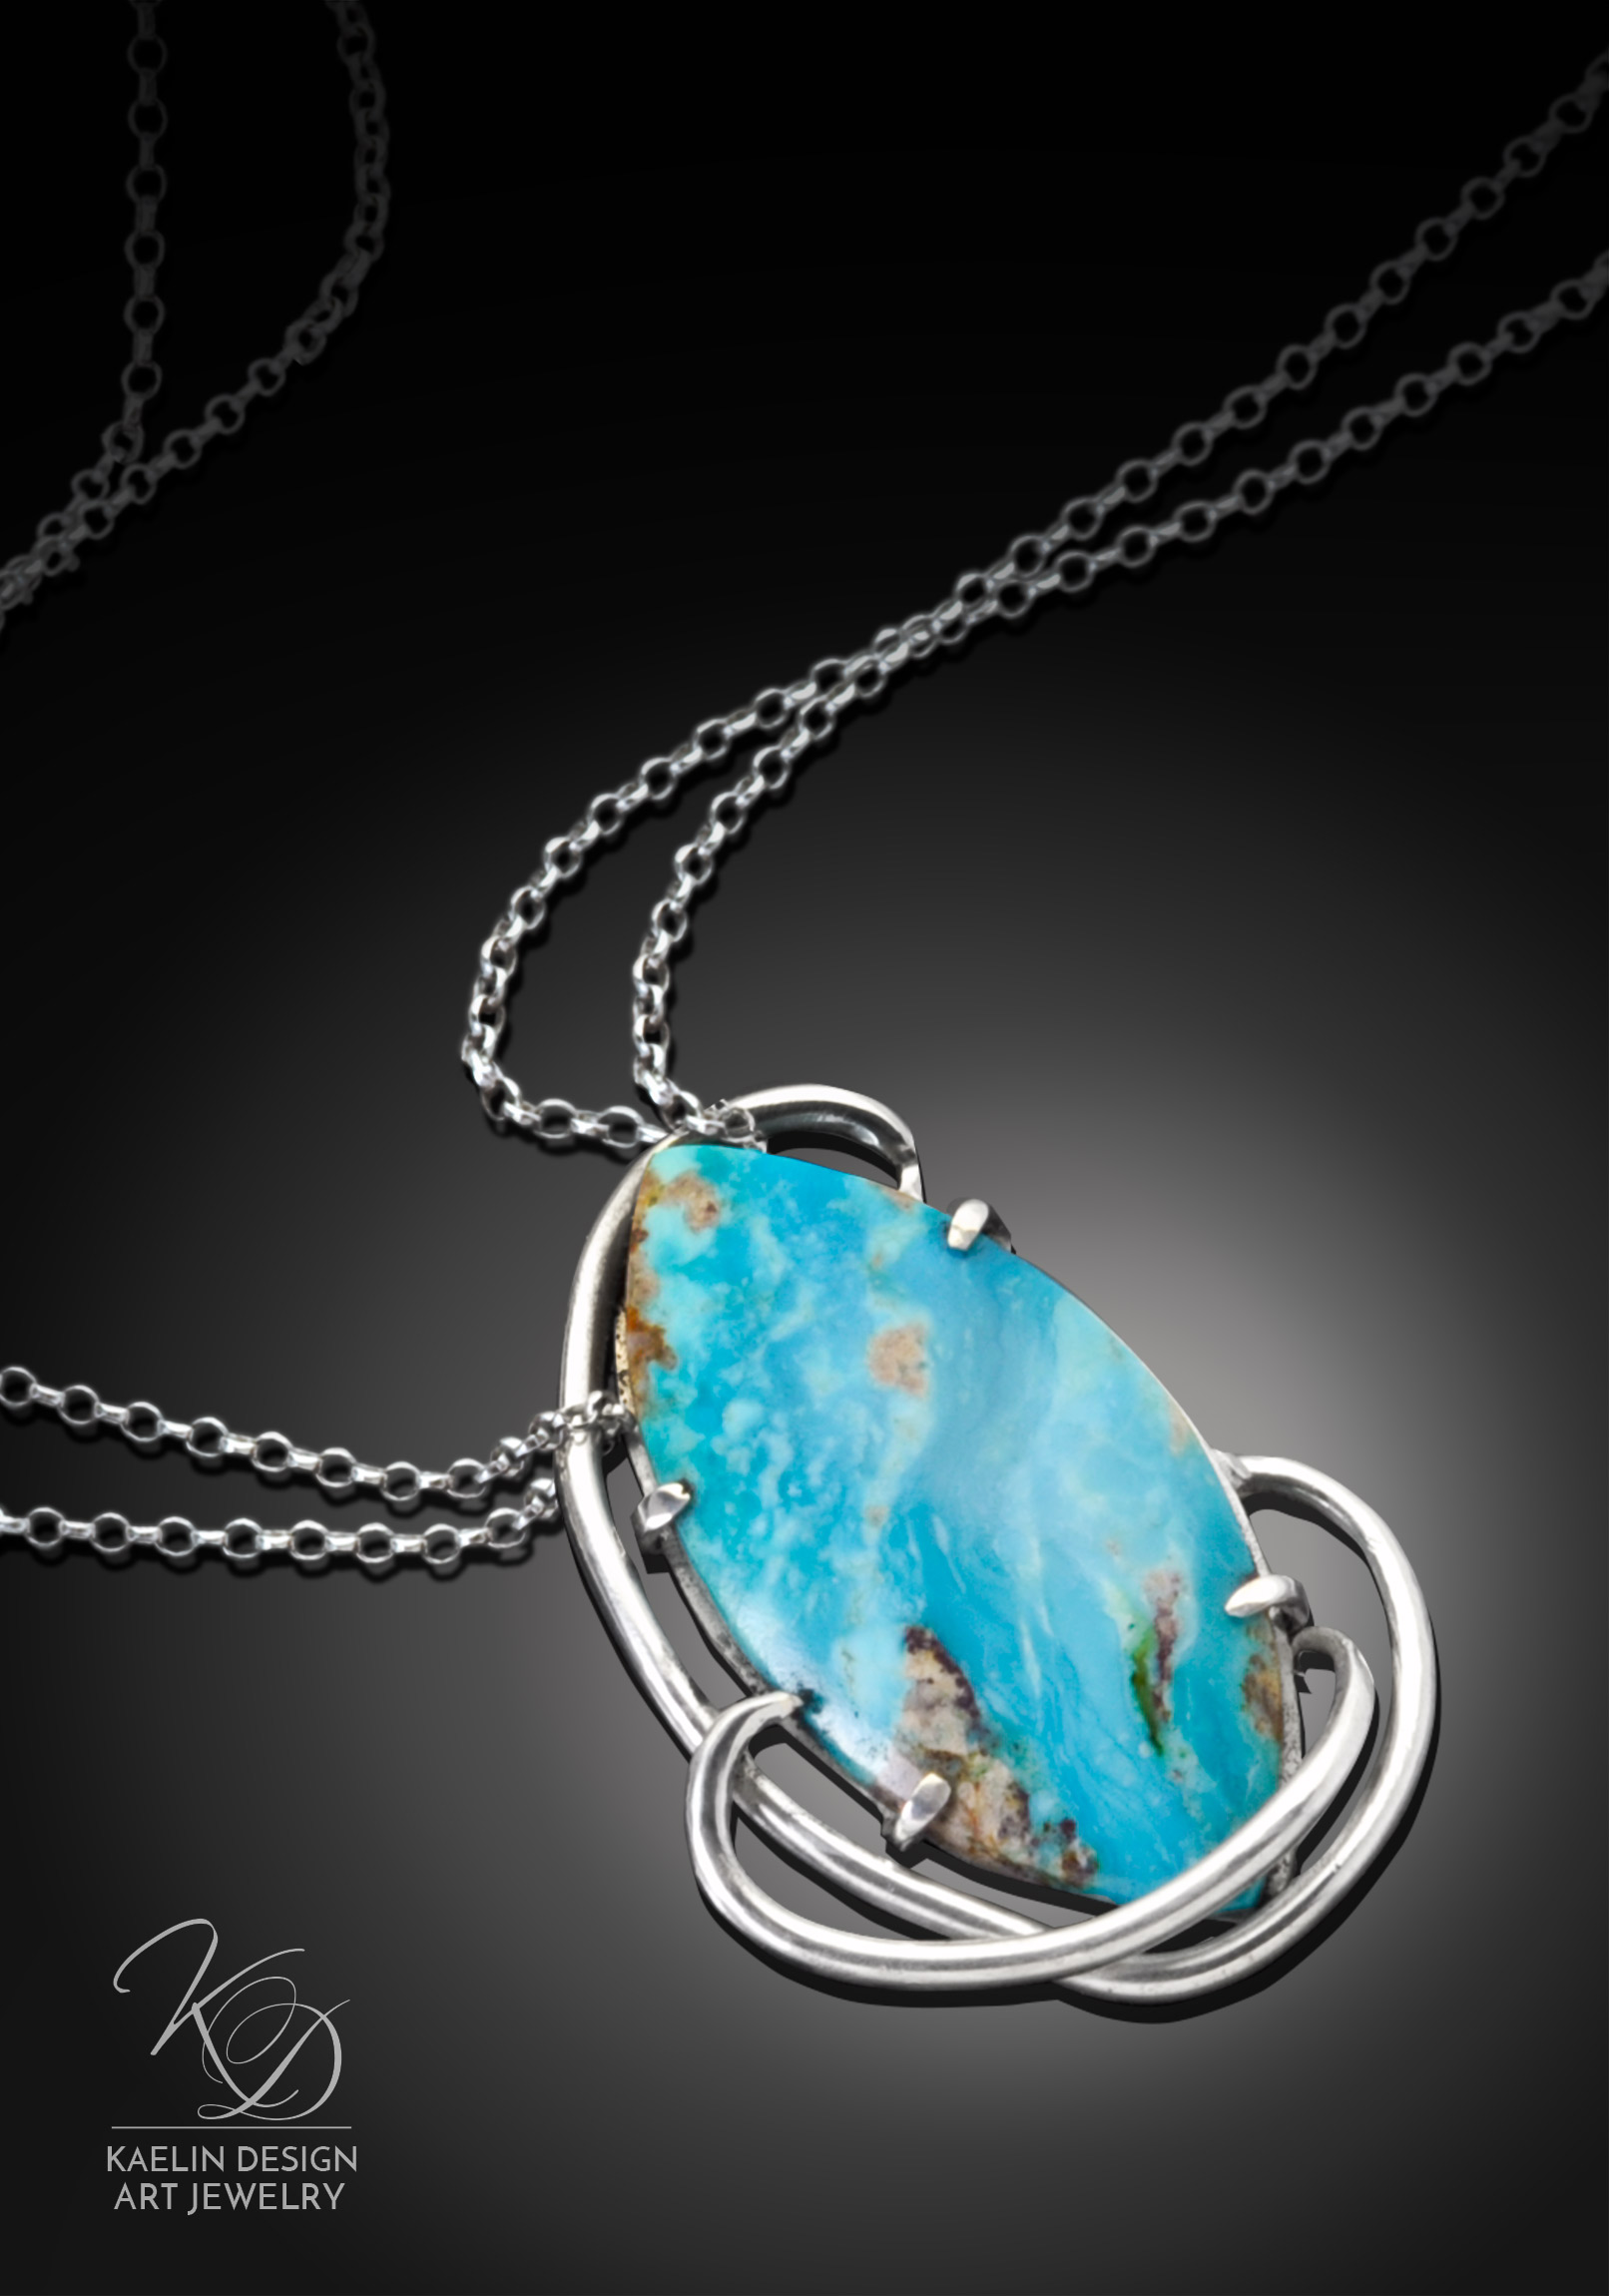 Sea Swept Art Jewelry Turquoise Pendant by Kaelin Design